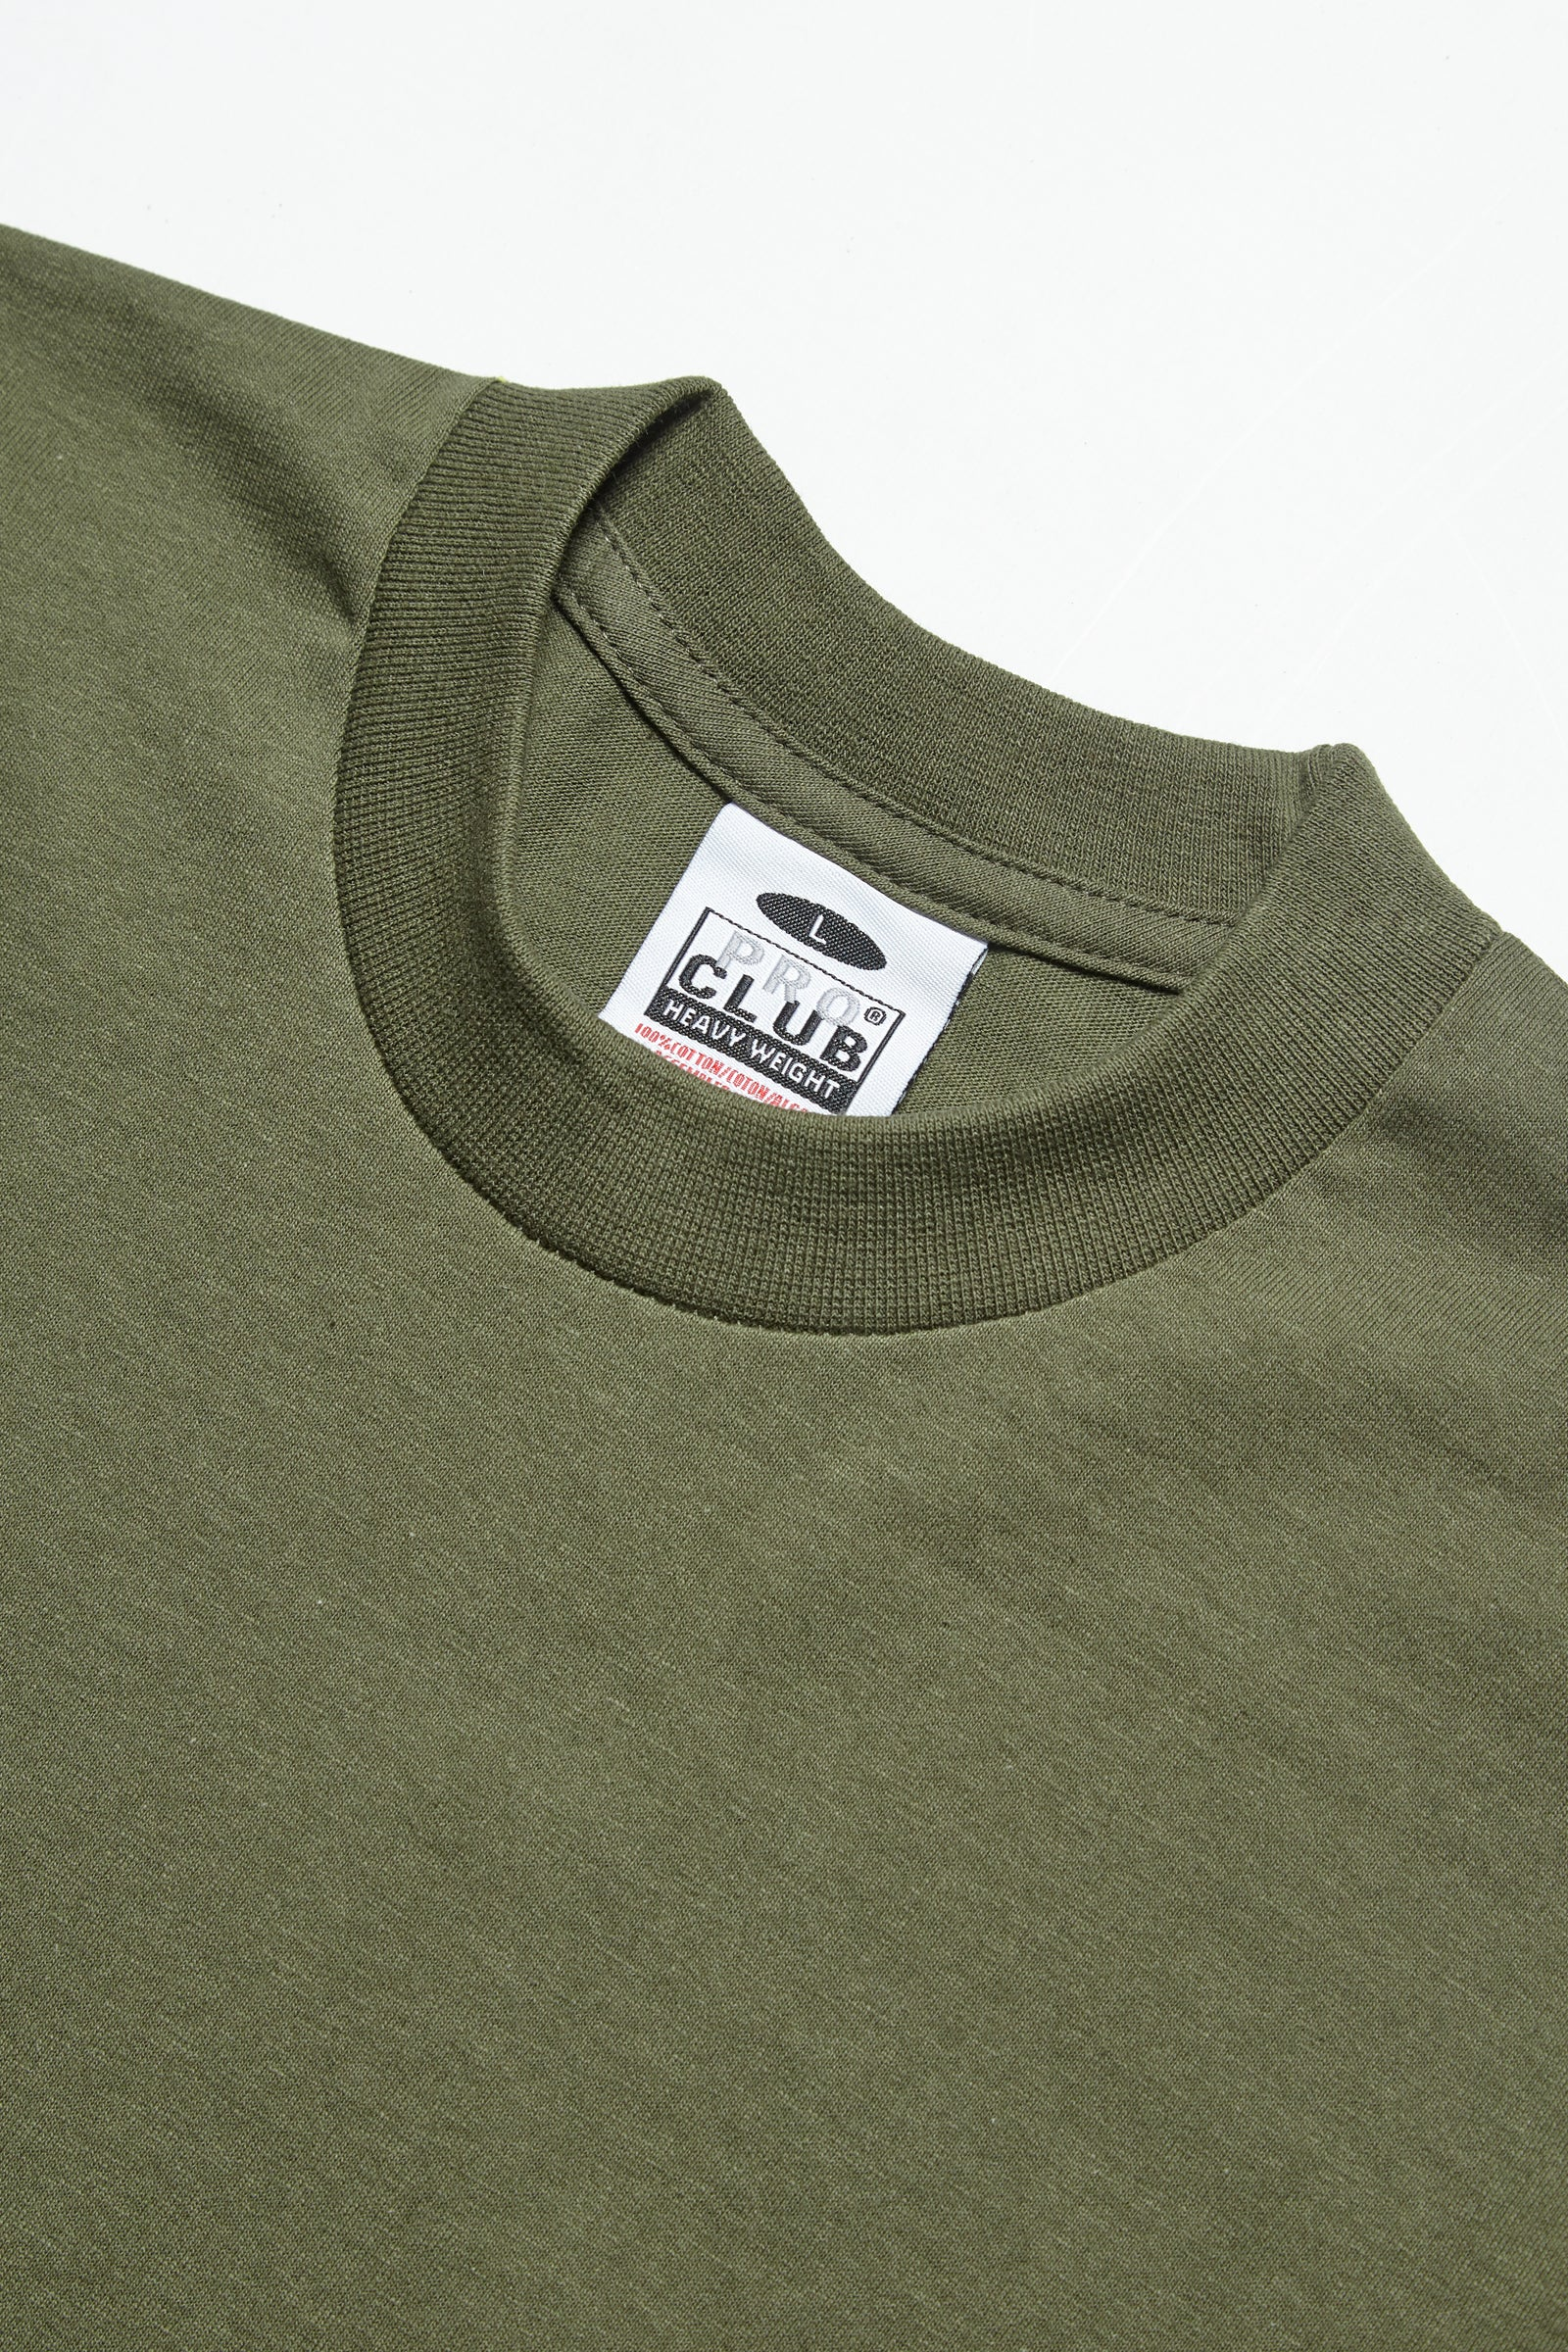 Pro Club - Heavyweight T-Shirt - Olive